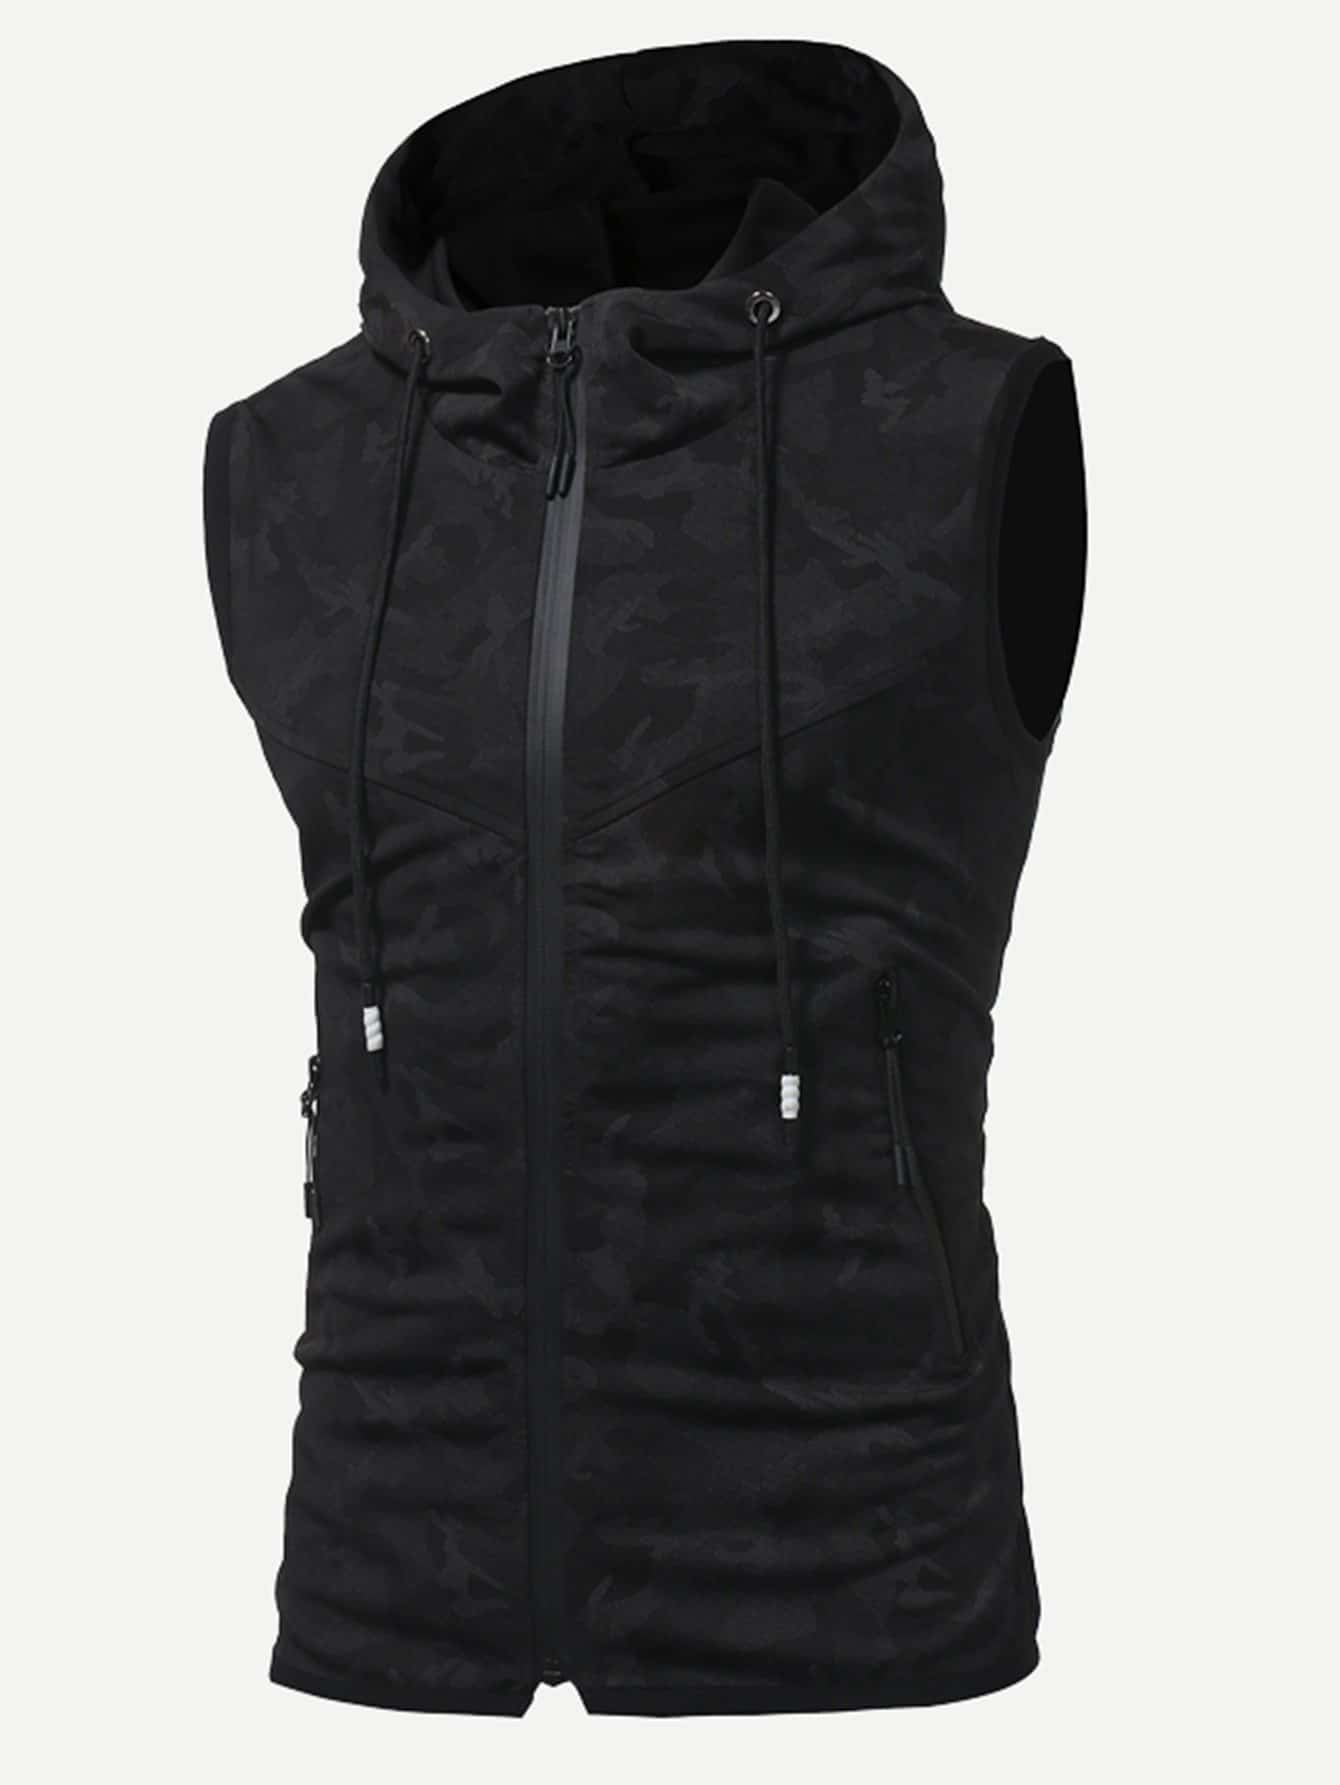 Men Hooded Sleeveless Jacket champion hooded jacket